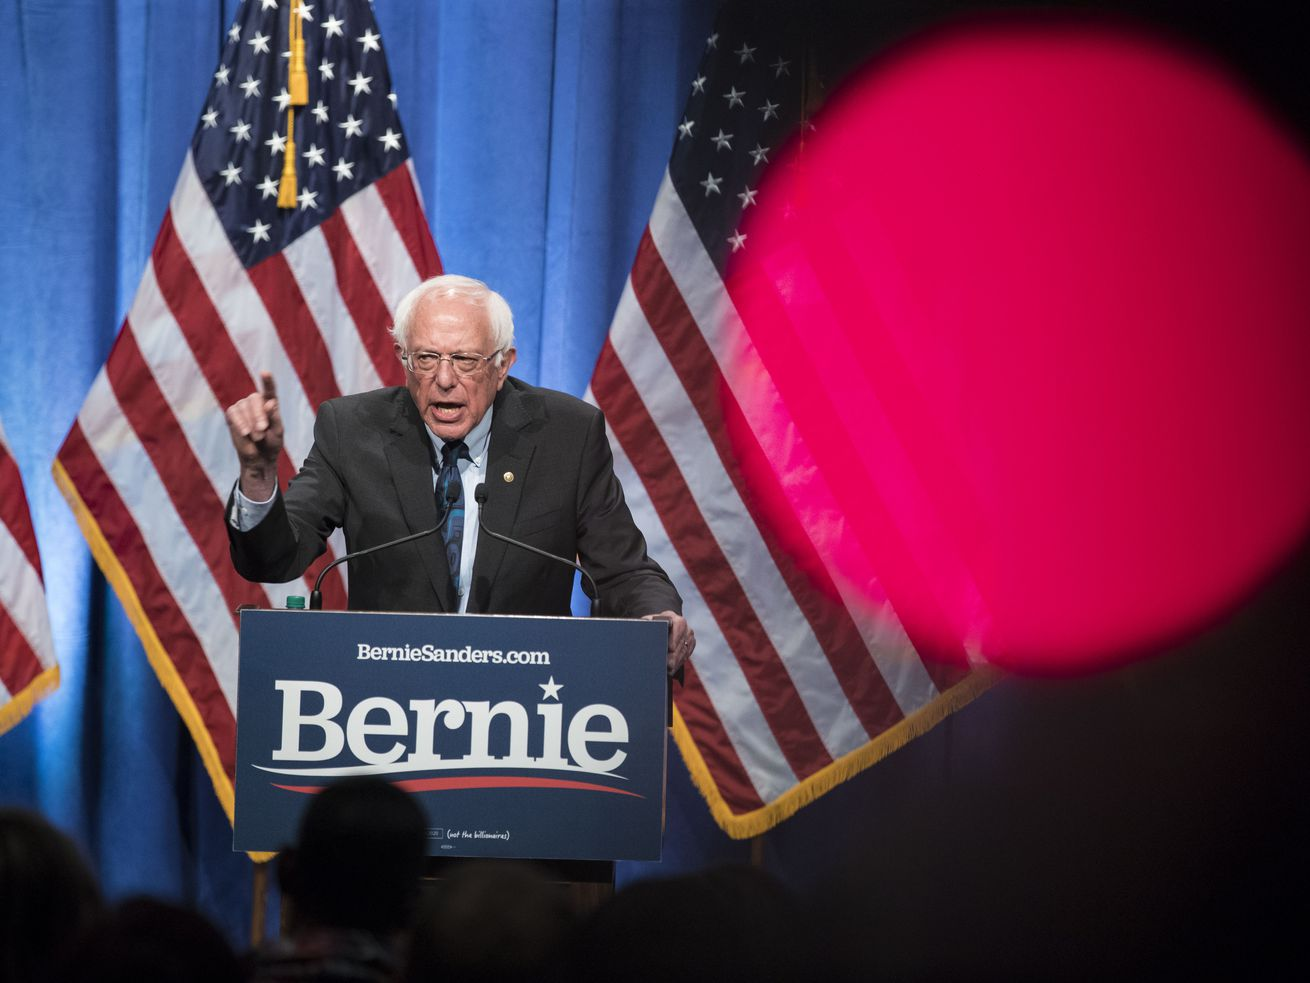 Sen. Bernie Sanders (I-VT) gave a speech on his political philosophy of democratic socialism on June 12, 2019, in Washington, DC.